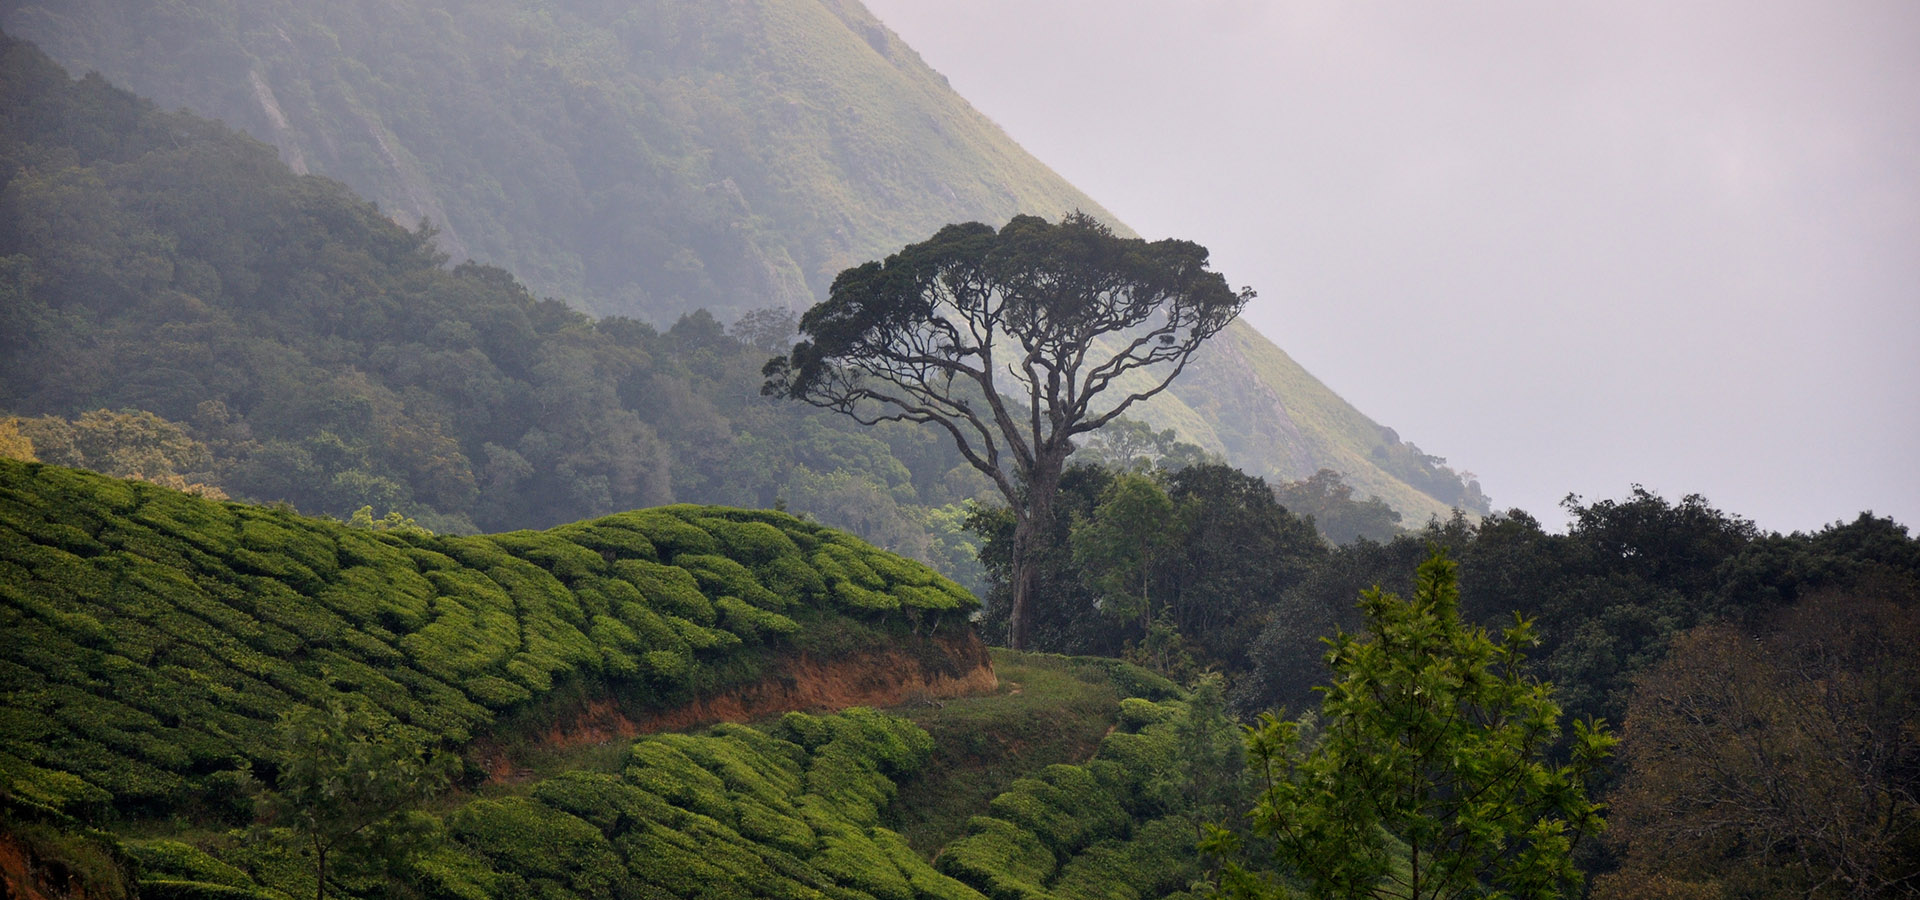 7 wow places to explore in Munnar